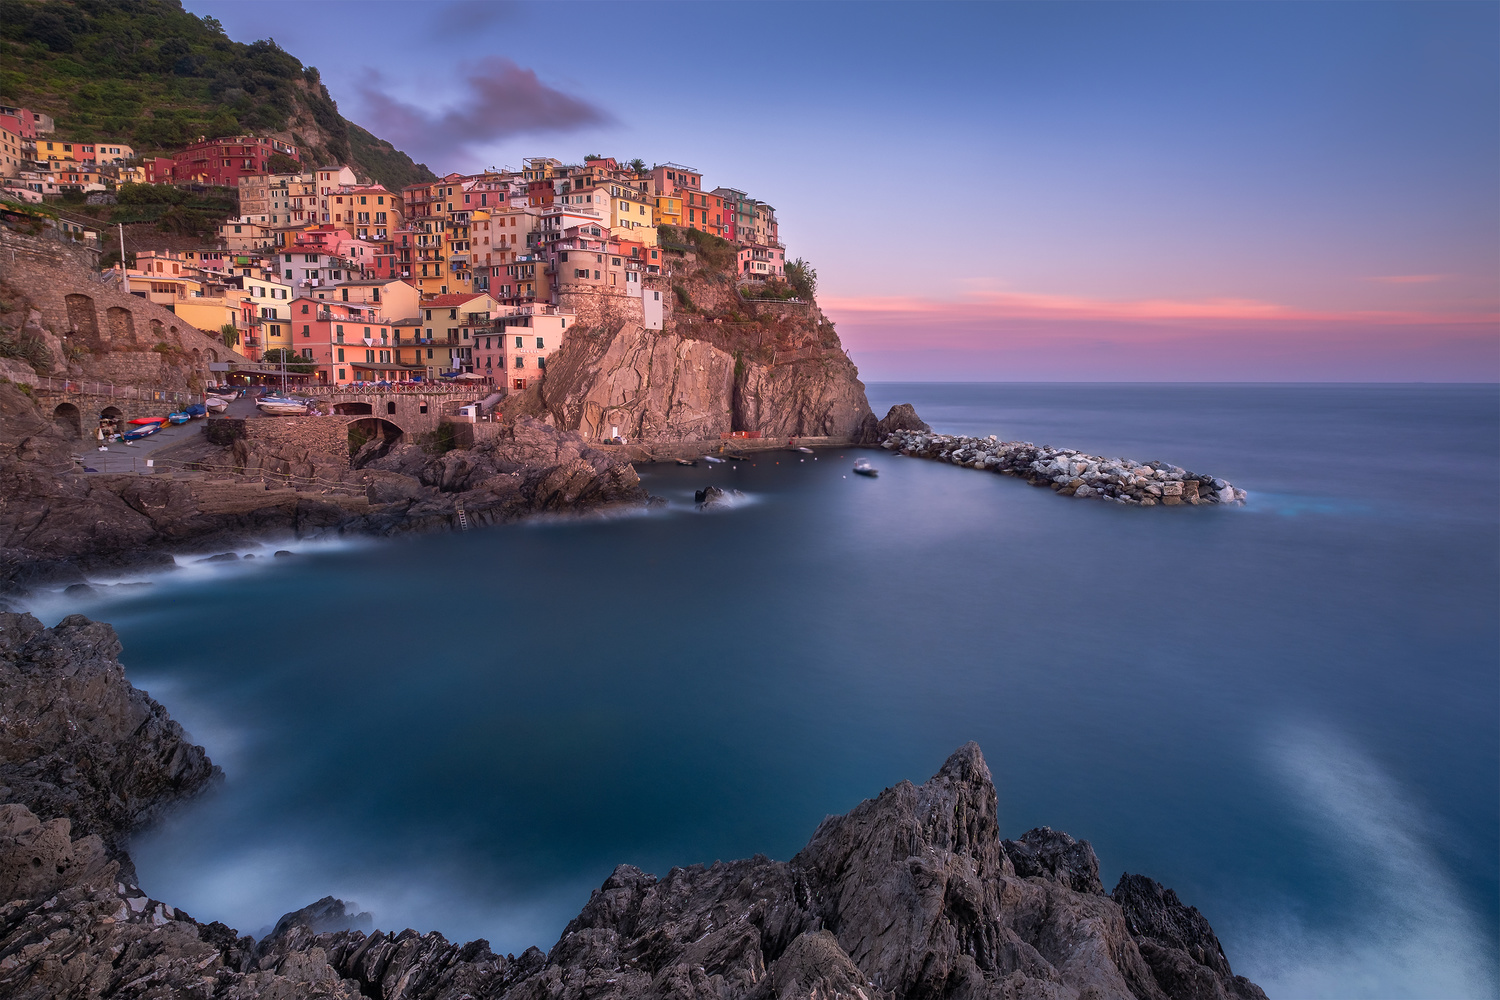 Sunset in Manarola by Anton Galitch